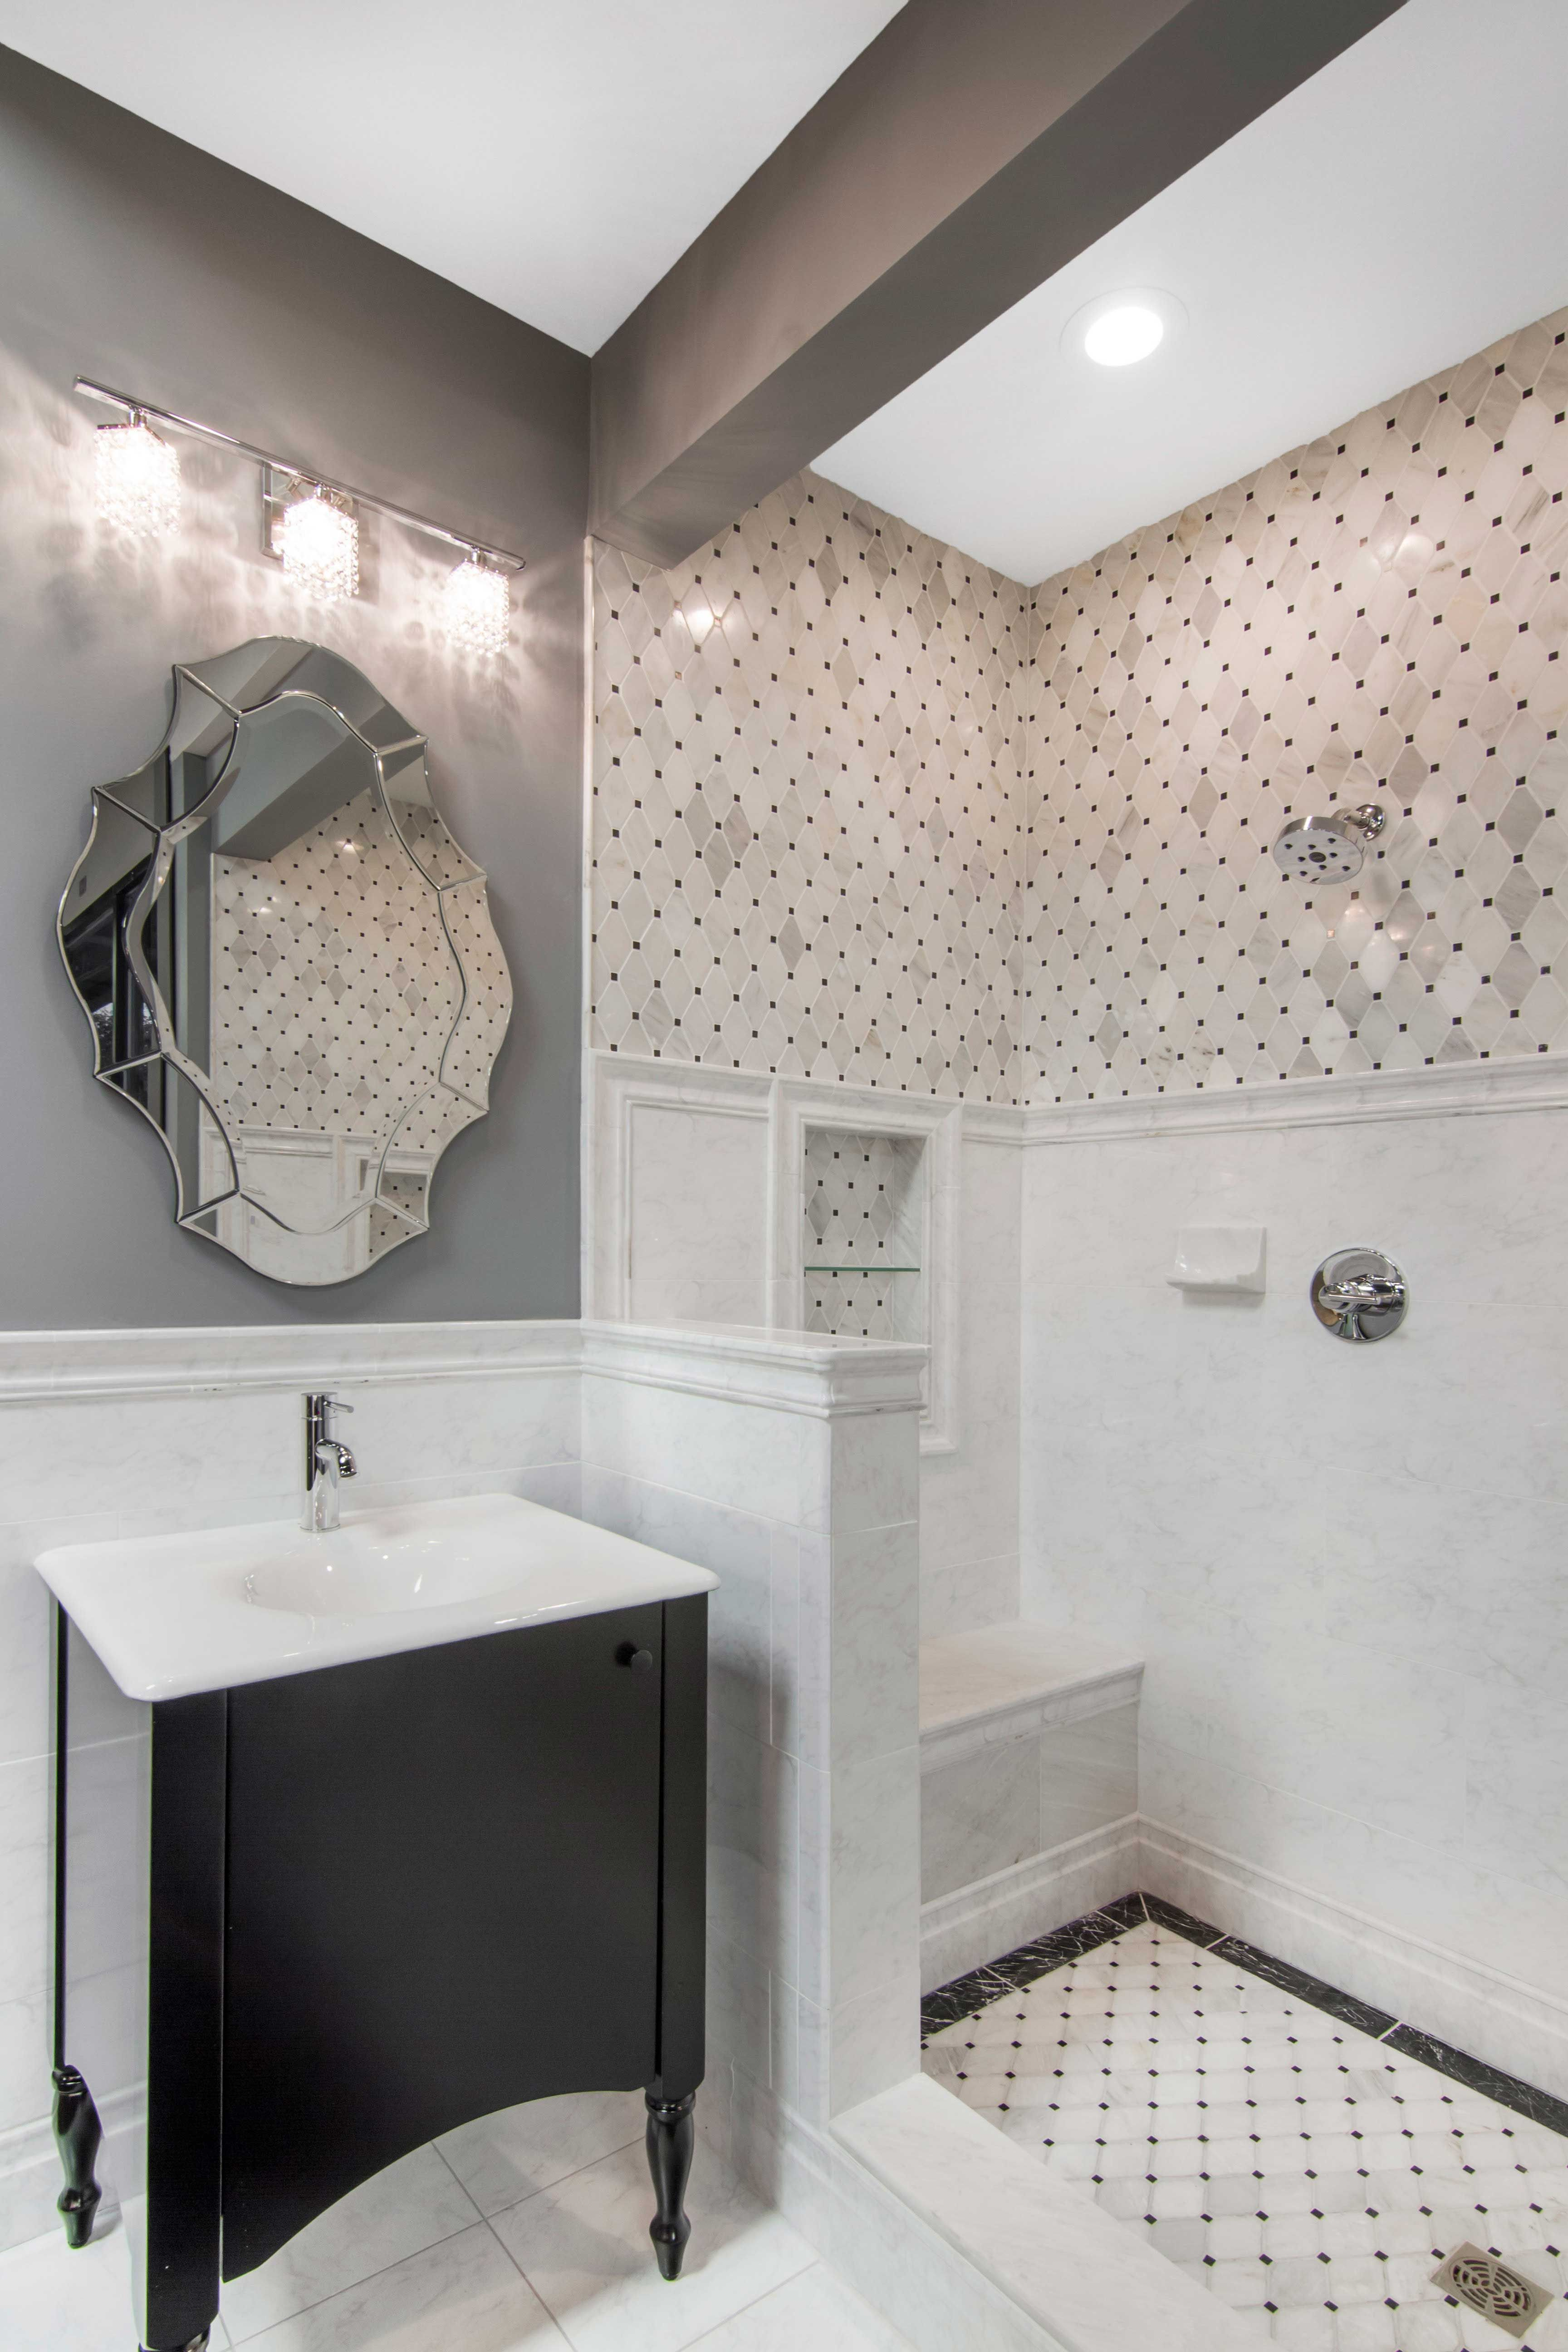 How to do wall tile in bathroom - Traditional And Modern Look With Classic Bathroom Tile Carrara Gris Ceramic Wall Tile Https